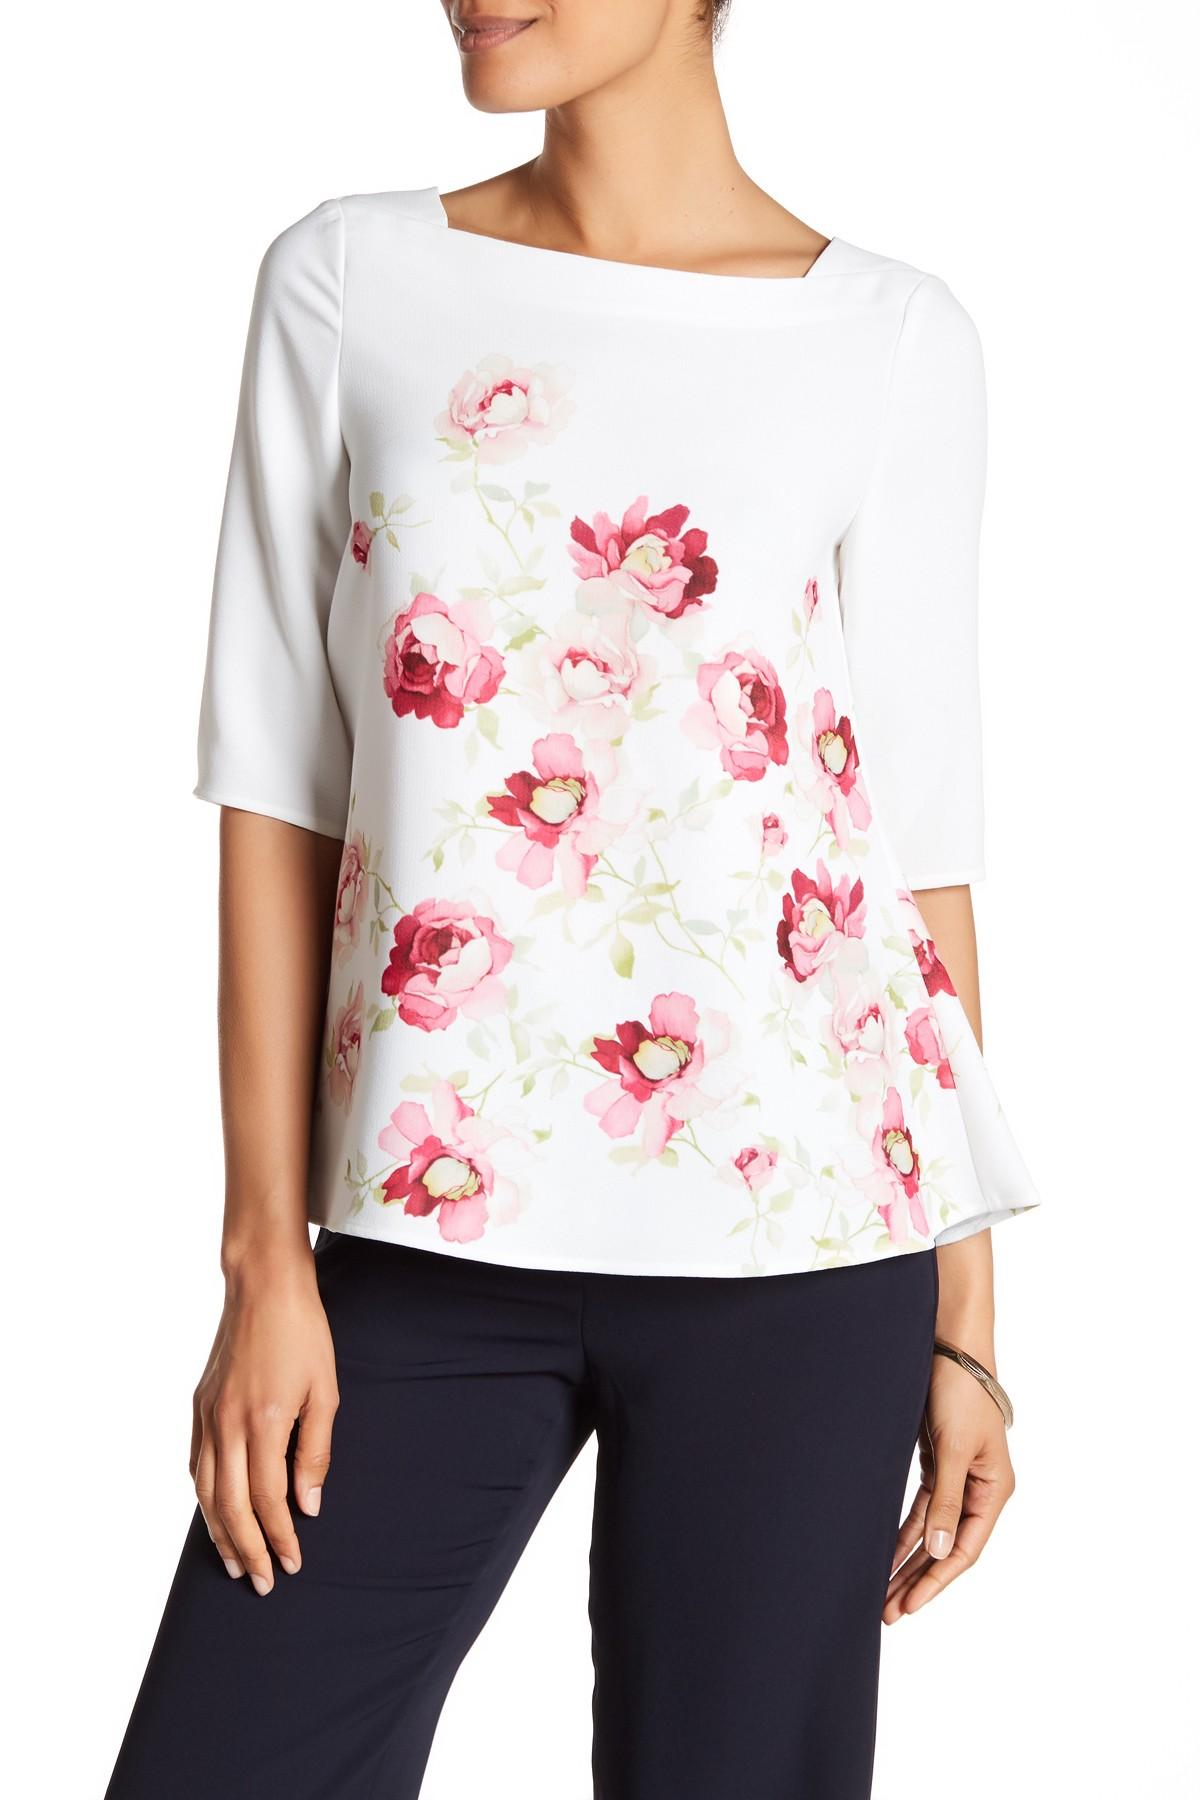 Petite Tops And Blouses